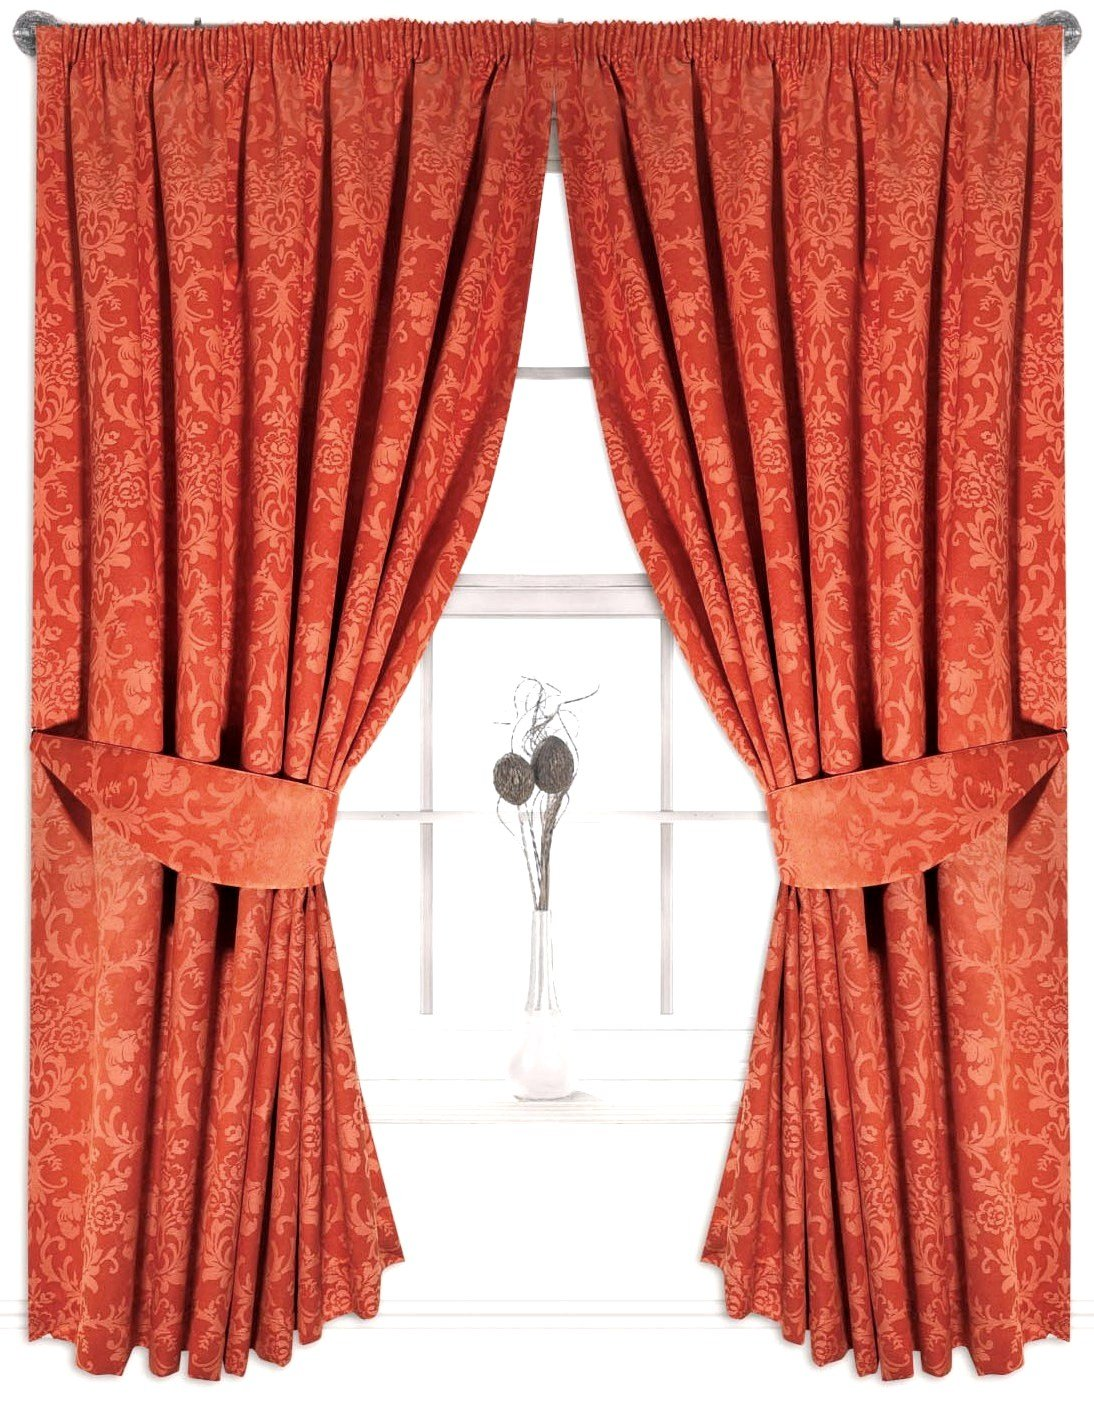 The house of emily one pair of burnt orange 46 x 72 fully lined floral design pencil pleated jacquard curtains amazon co uk kitchen home